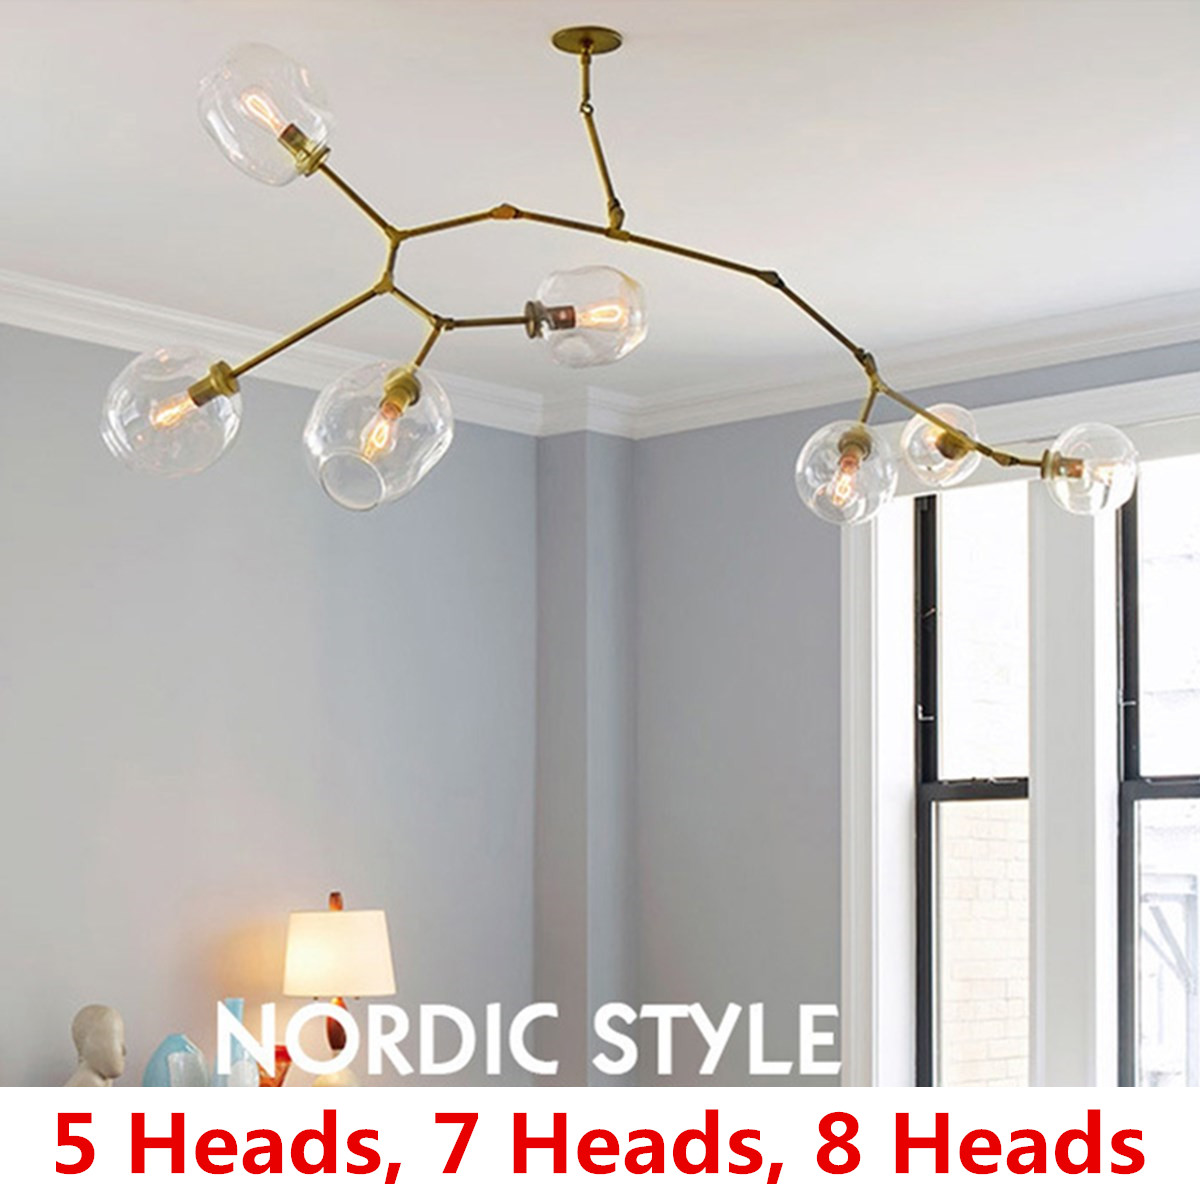 Nordic Industrial Ceiling Light vintage LED ceiling Lamp Modern Glass Lampshade living room restaurant coffee bedroom decorationNordic Industrial Ceiling Light vintage LED ceiling Lamp Modern Glass Lampshade living room restaurant coffee bedroom decoration